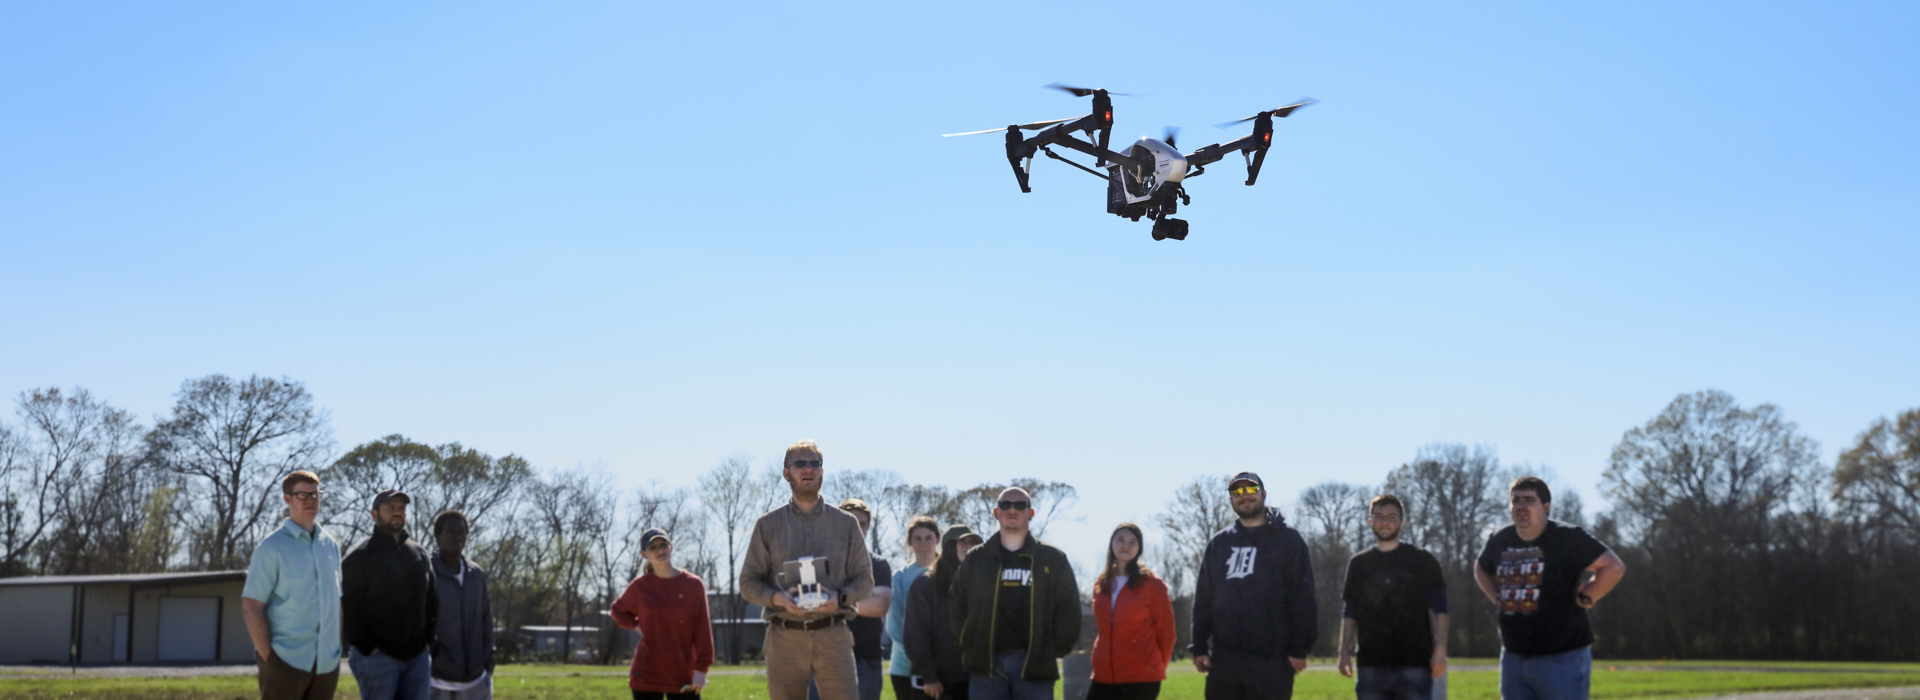 Students and professor watch a drone take flight